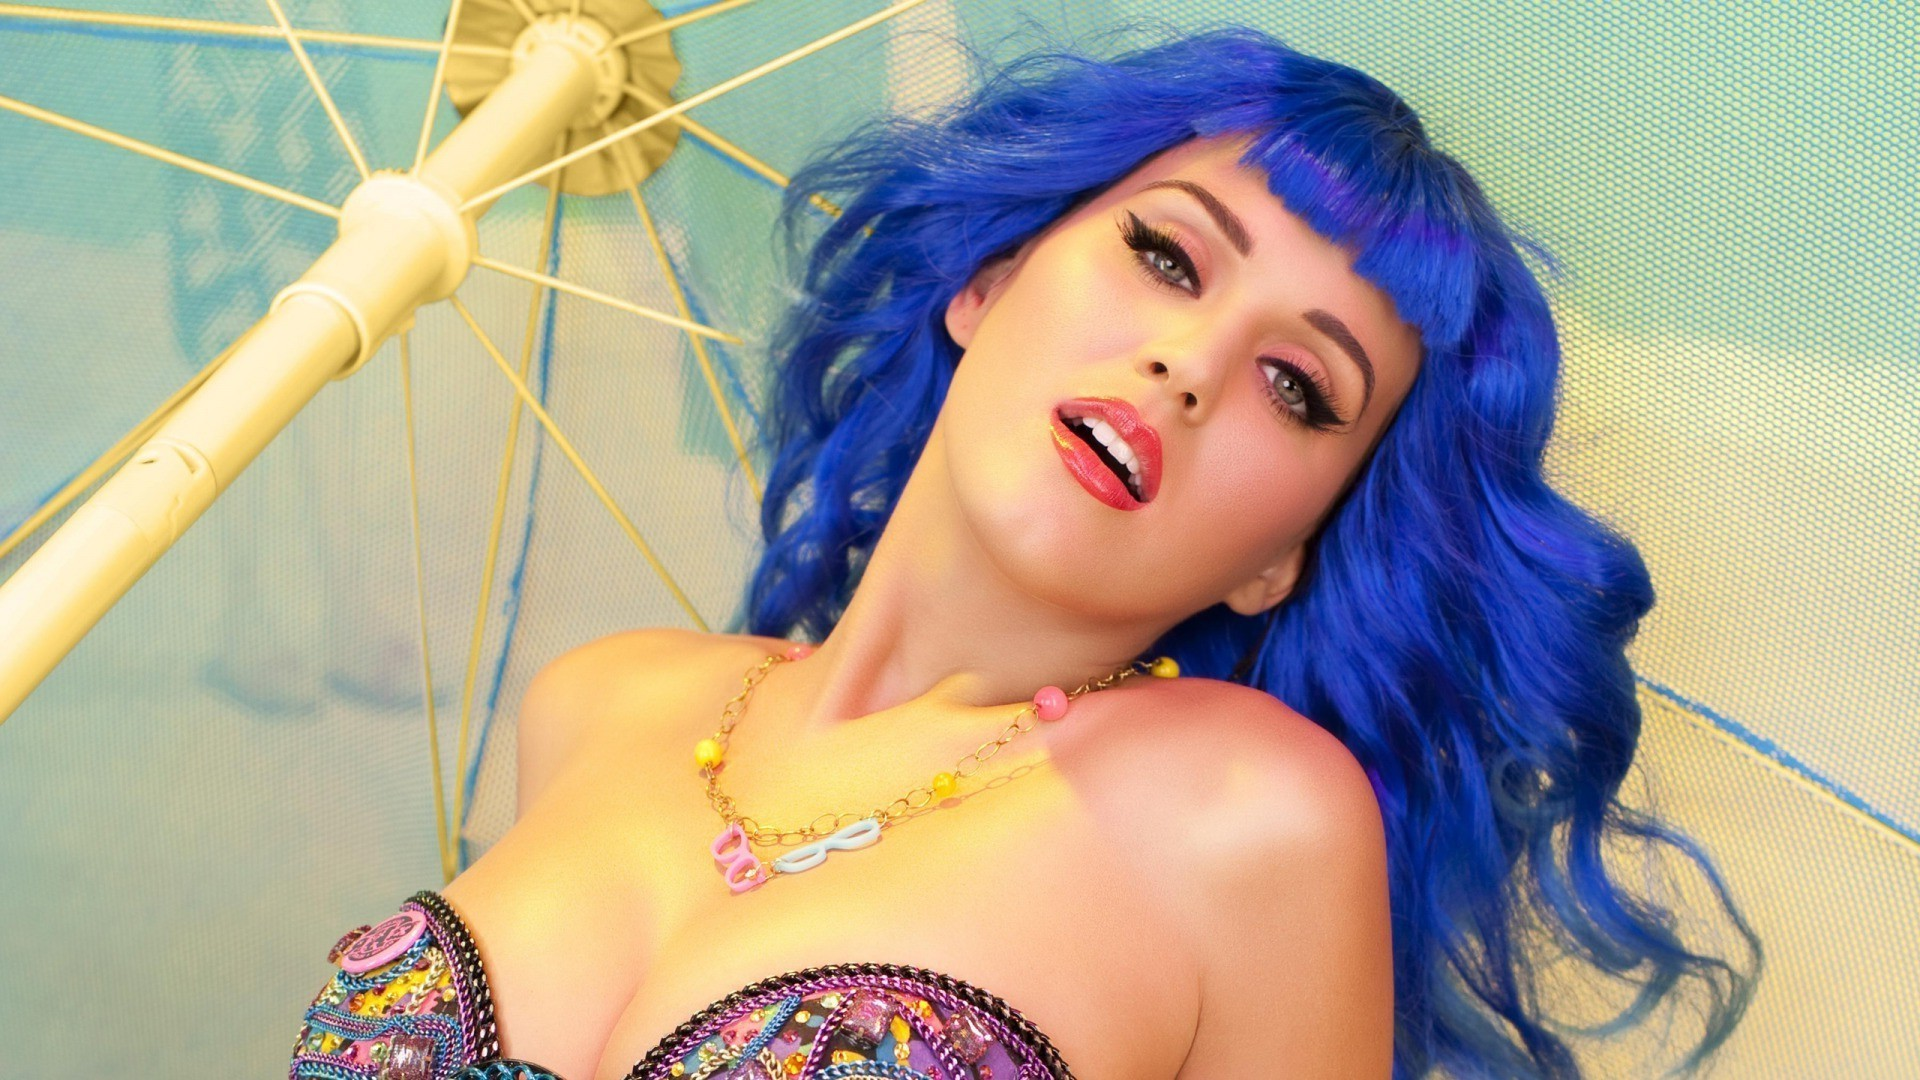 Katy Perry Hd Wallpaper 1920x1080 80 Images